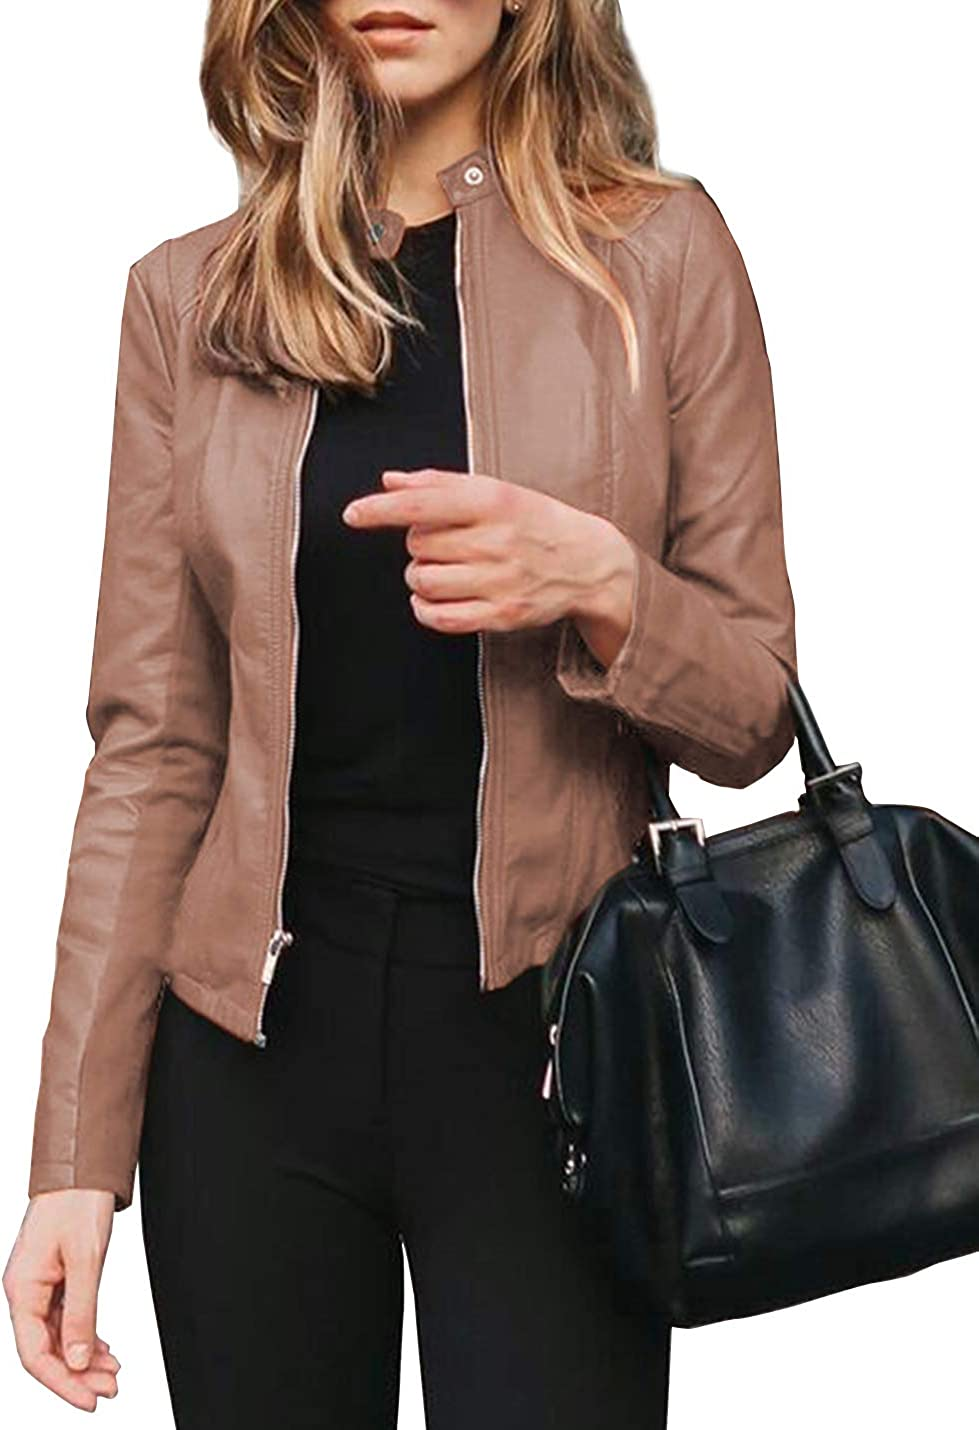 Locachy Women's Faux Leather Zip Up Bomber Motorcycle Biker Jacket